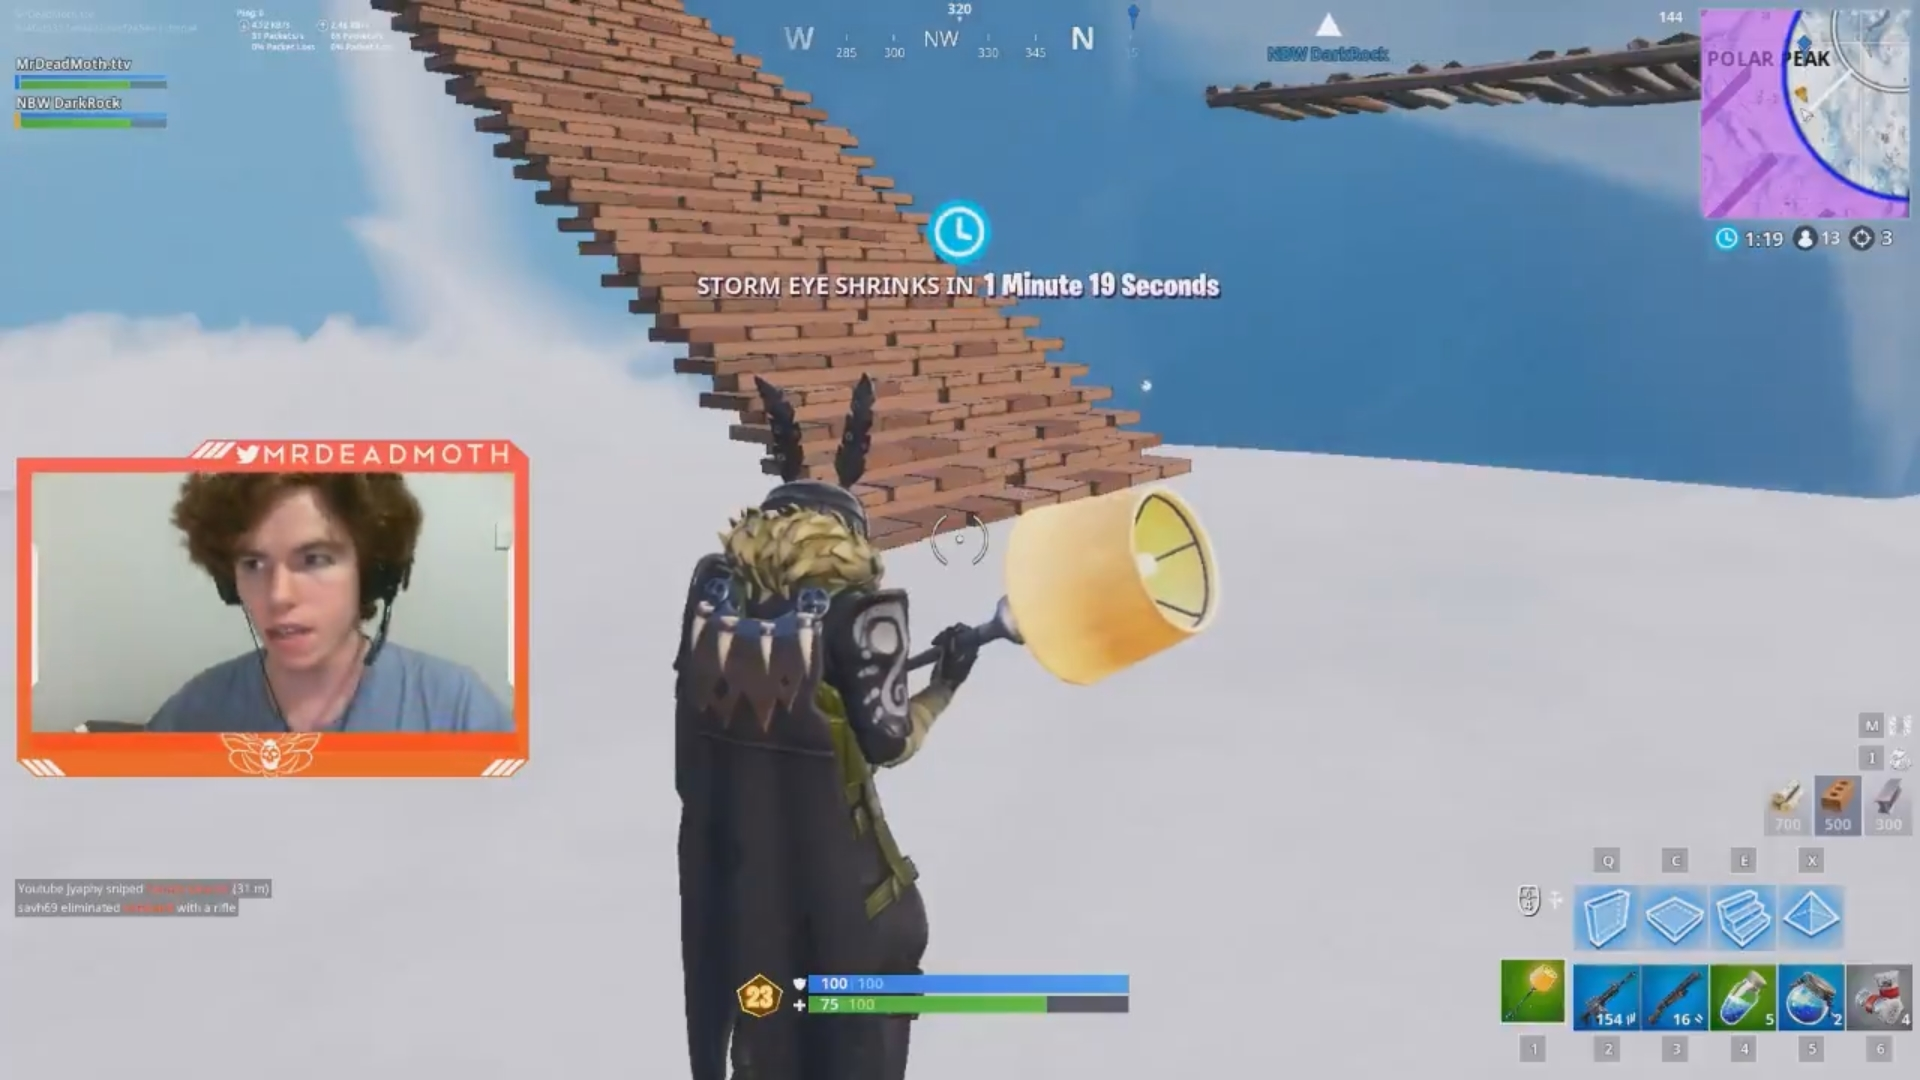 Fortnite streamer reportedly arrested after beating wife on stream